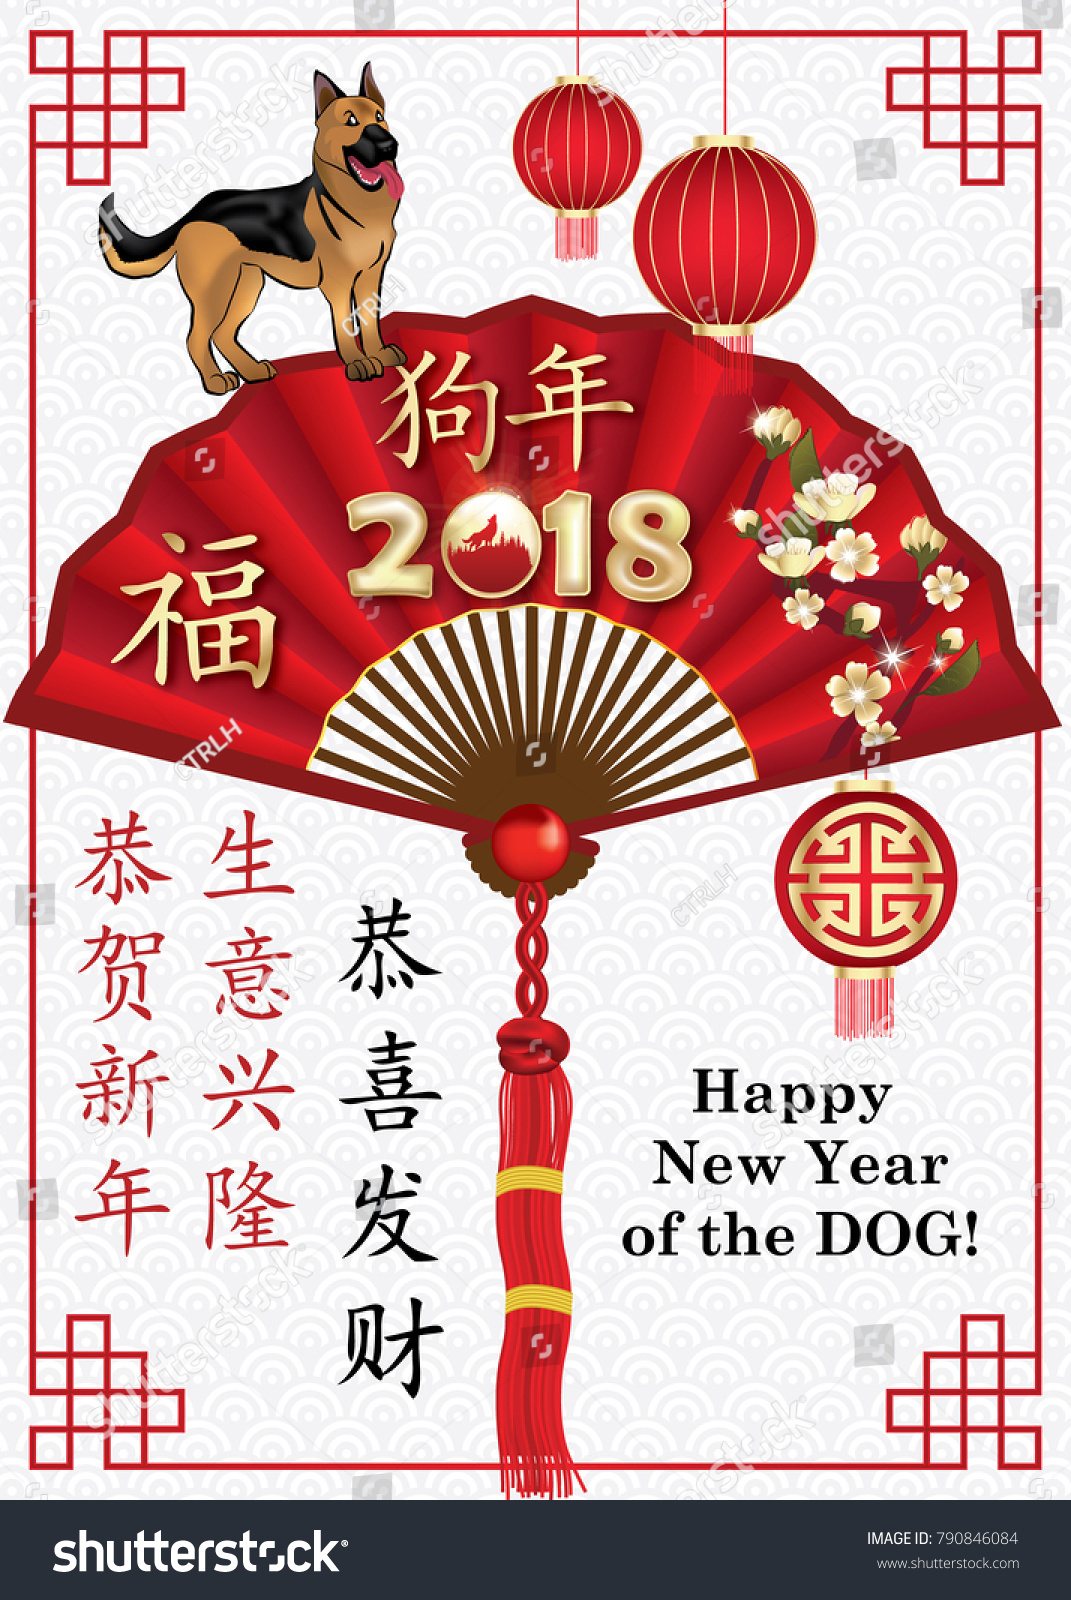 Happy chinese new year 2018 greeting stock illustration 790846084 happy chinese new year 2018 greeting card with text in chinese and english ideograms m4hsunfo